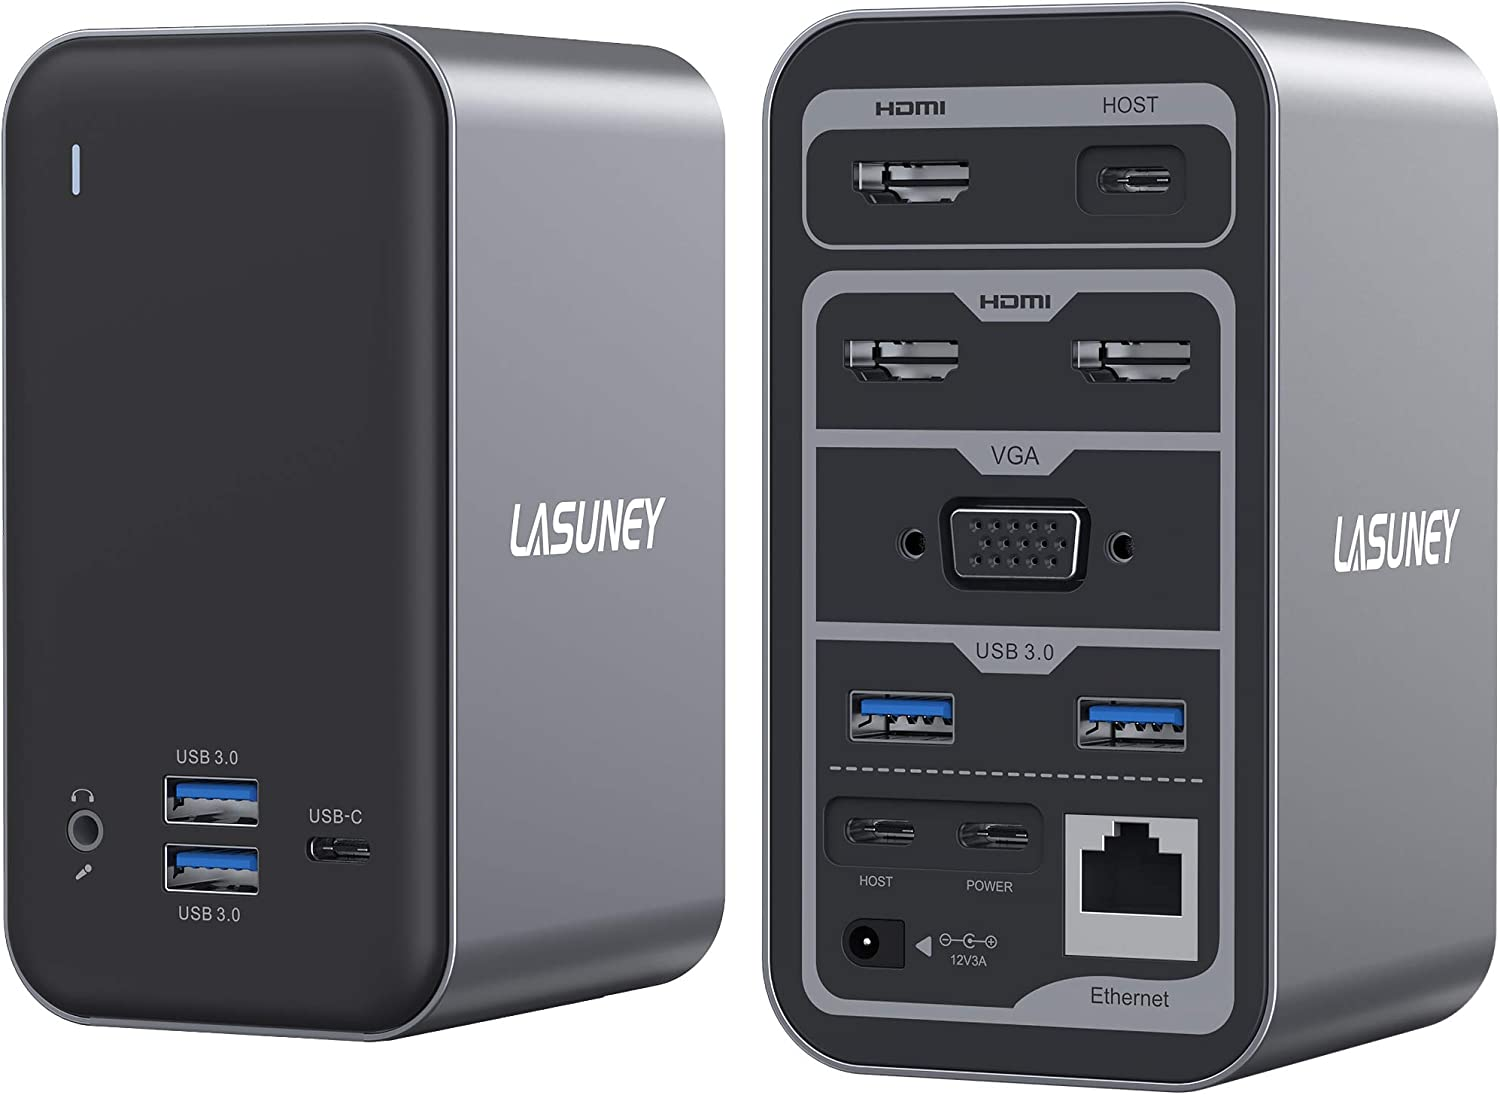 Lasuney 15 in 1 Multiple Display USB C Laptop Docking Station (3 HDMI, VGA, Ethernet, 2 USB-C in Ports for Connecting Two laptops, 4 USB-A and 2 USB-C Ports for Charging and Data, Audio/mic, AC/DC)